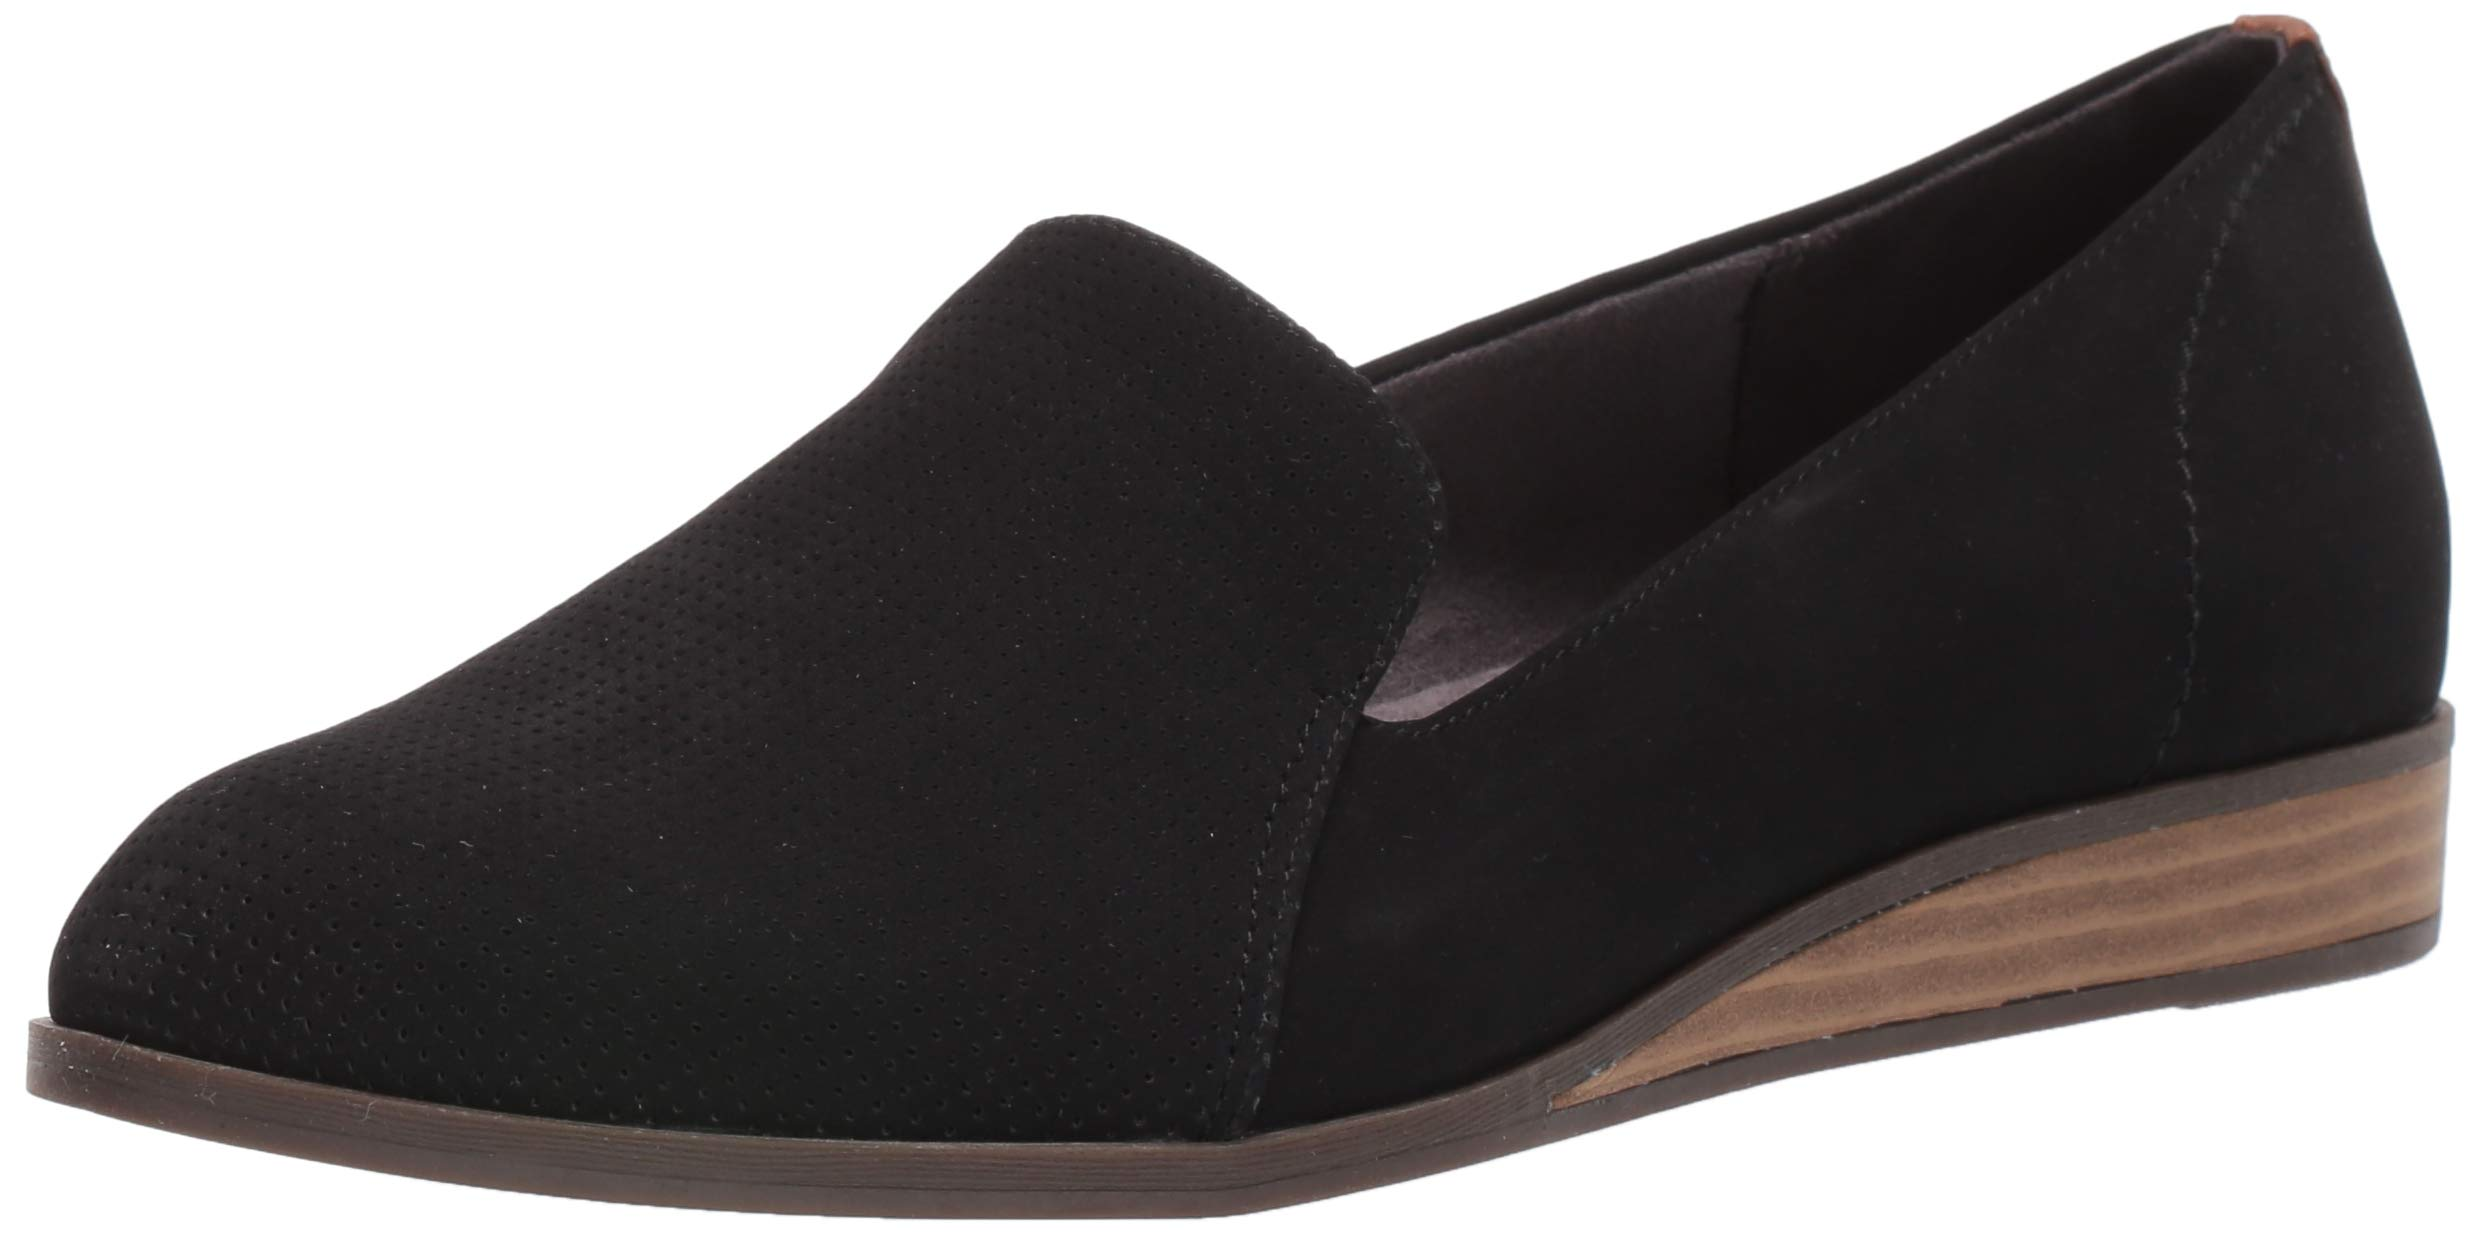 Dr. Scholl's Shoes Women's Devyn Loafer Flat